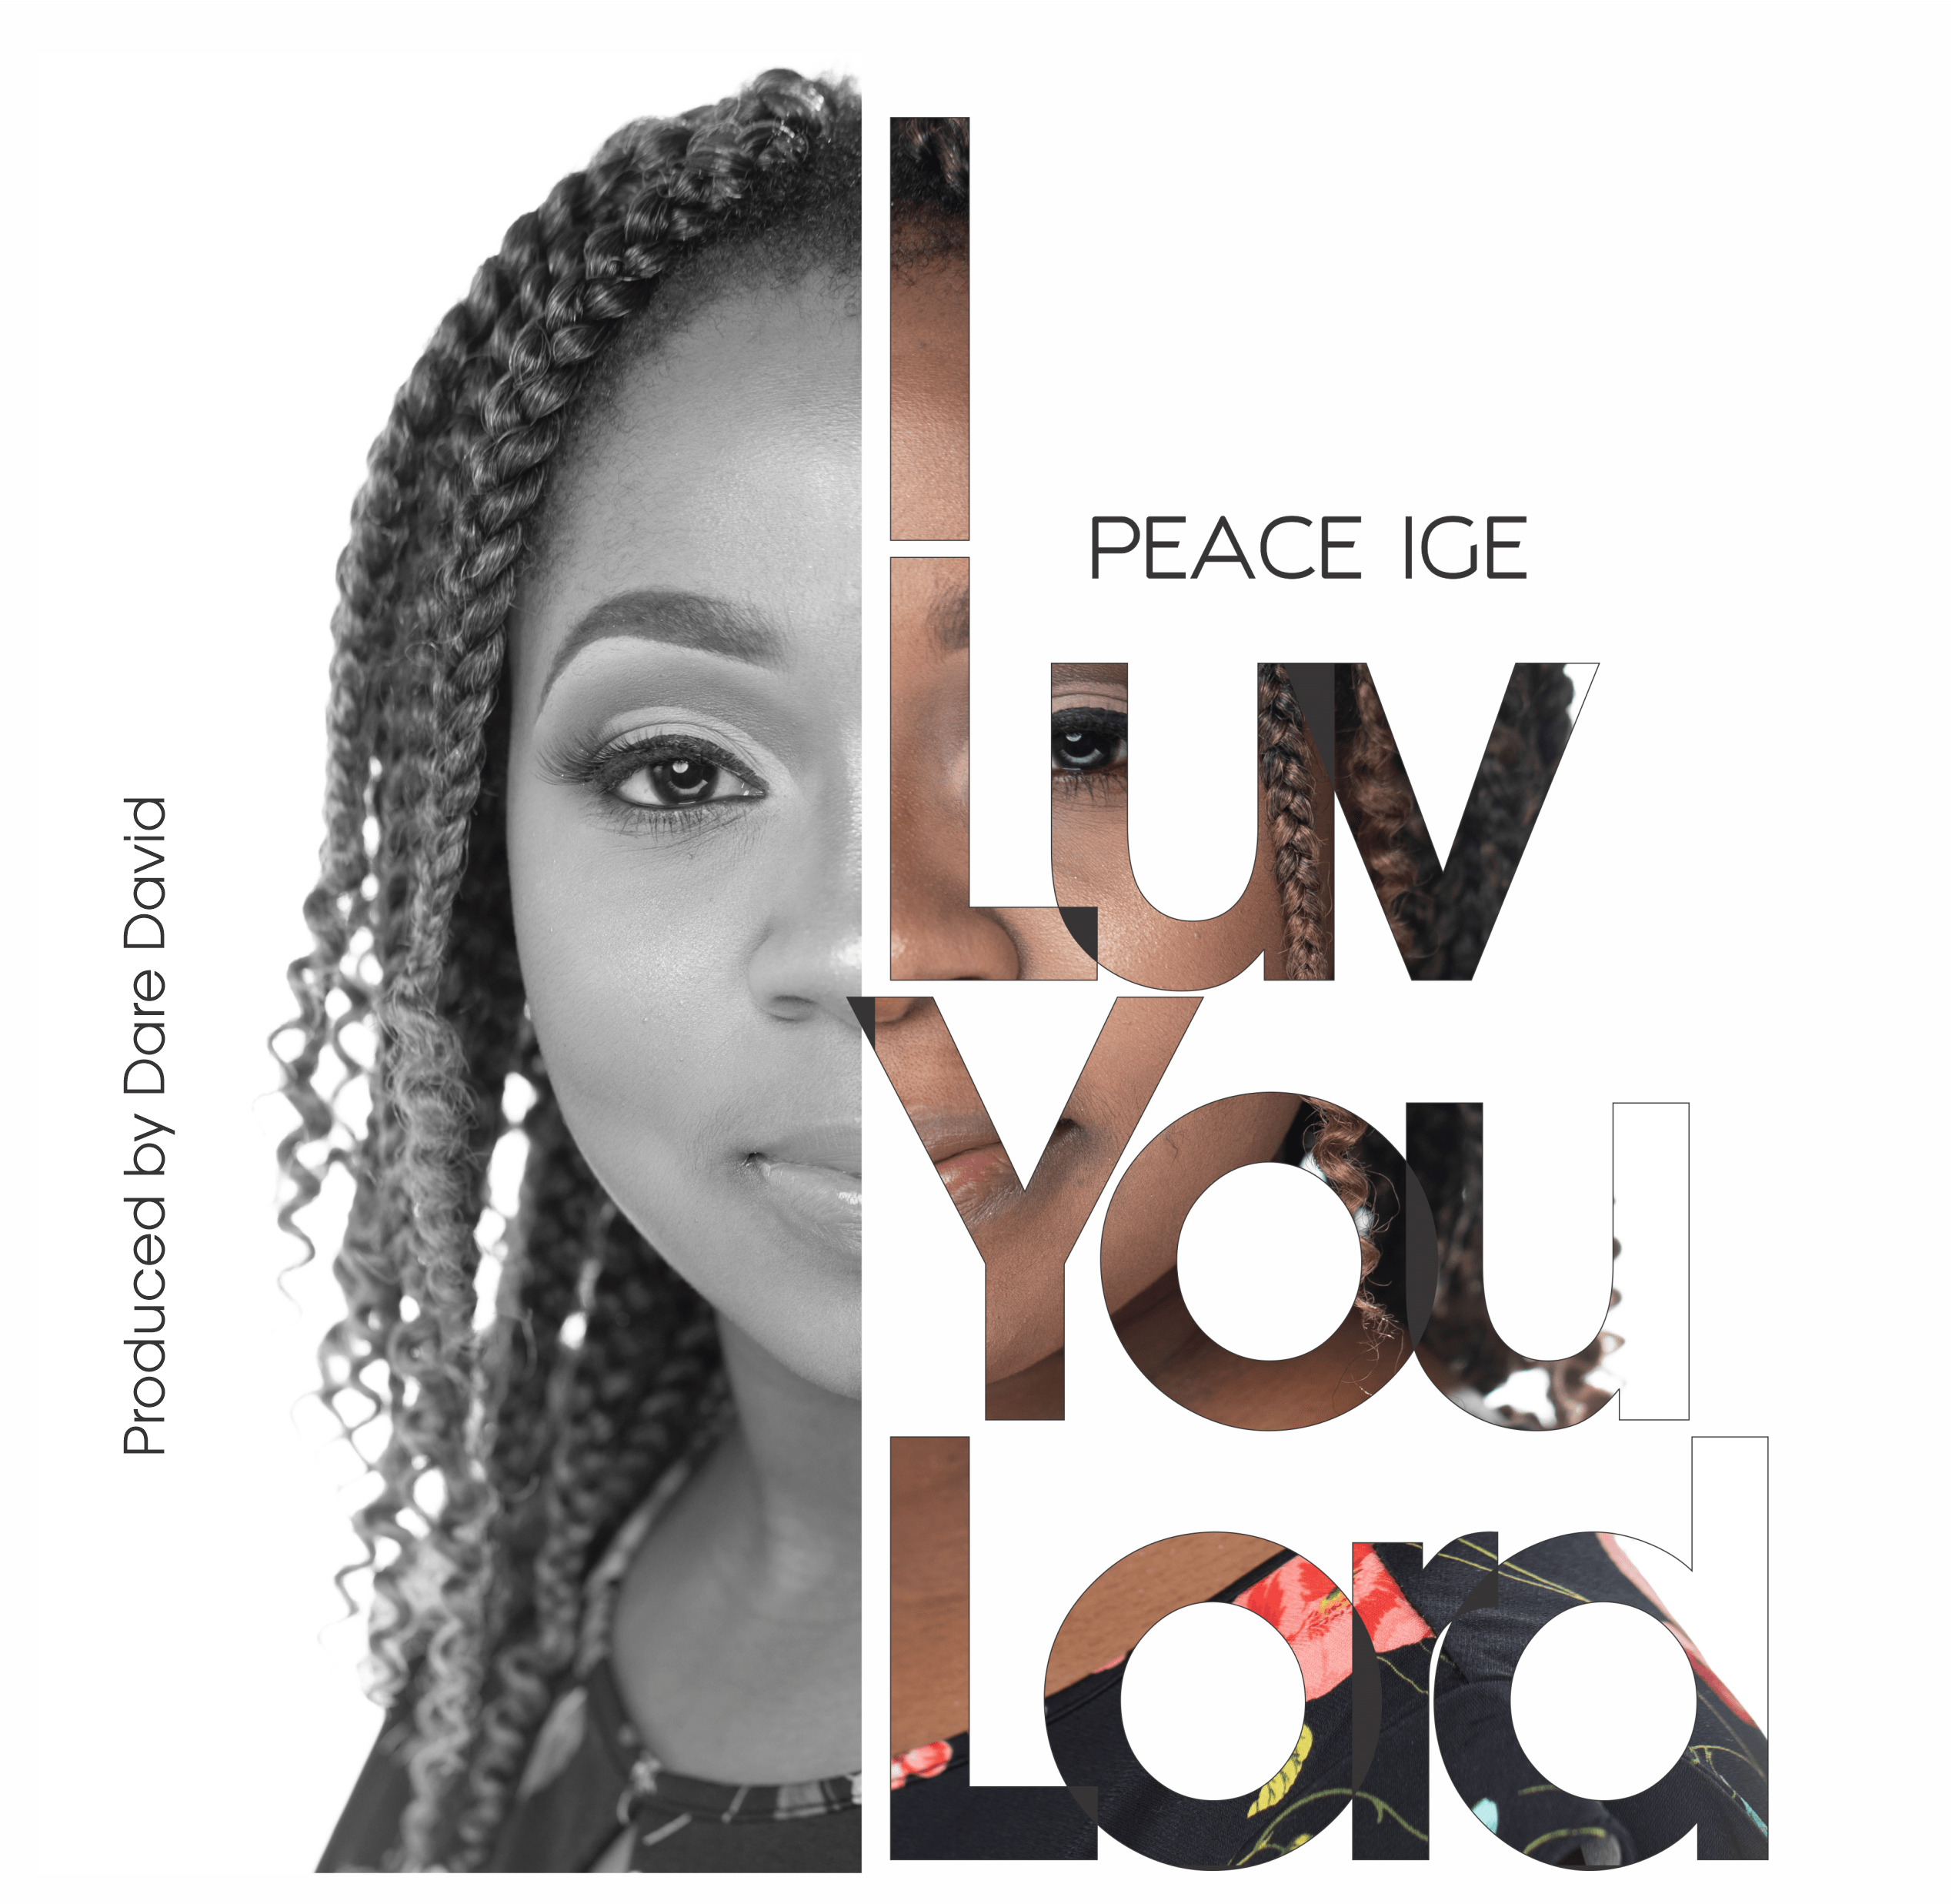 I LUV YOU LORD ... Peace Ige masterfully raises the bar in her new afro-dynamic sing-along get-on-your-feet-and-dance gospel groove